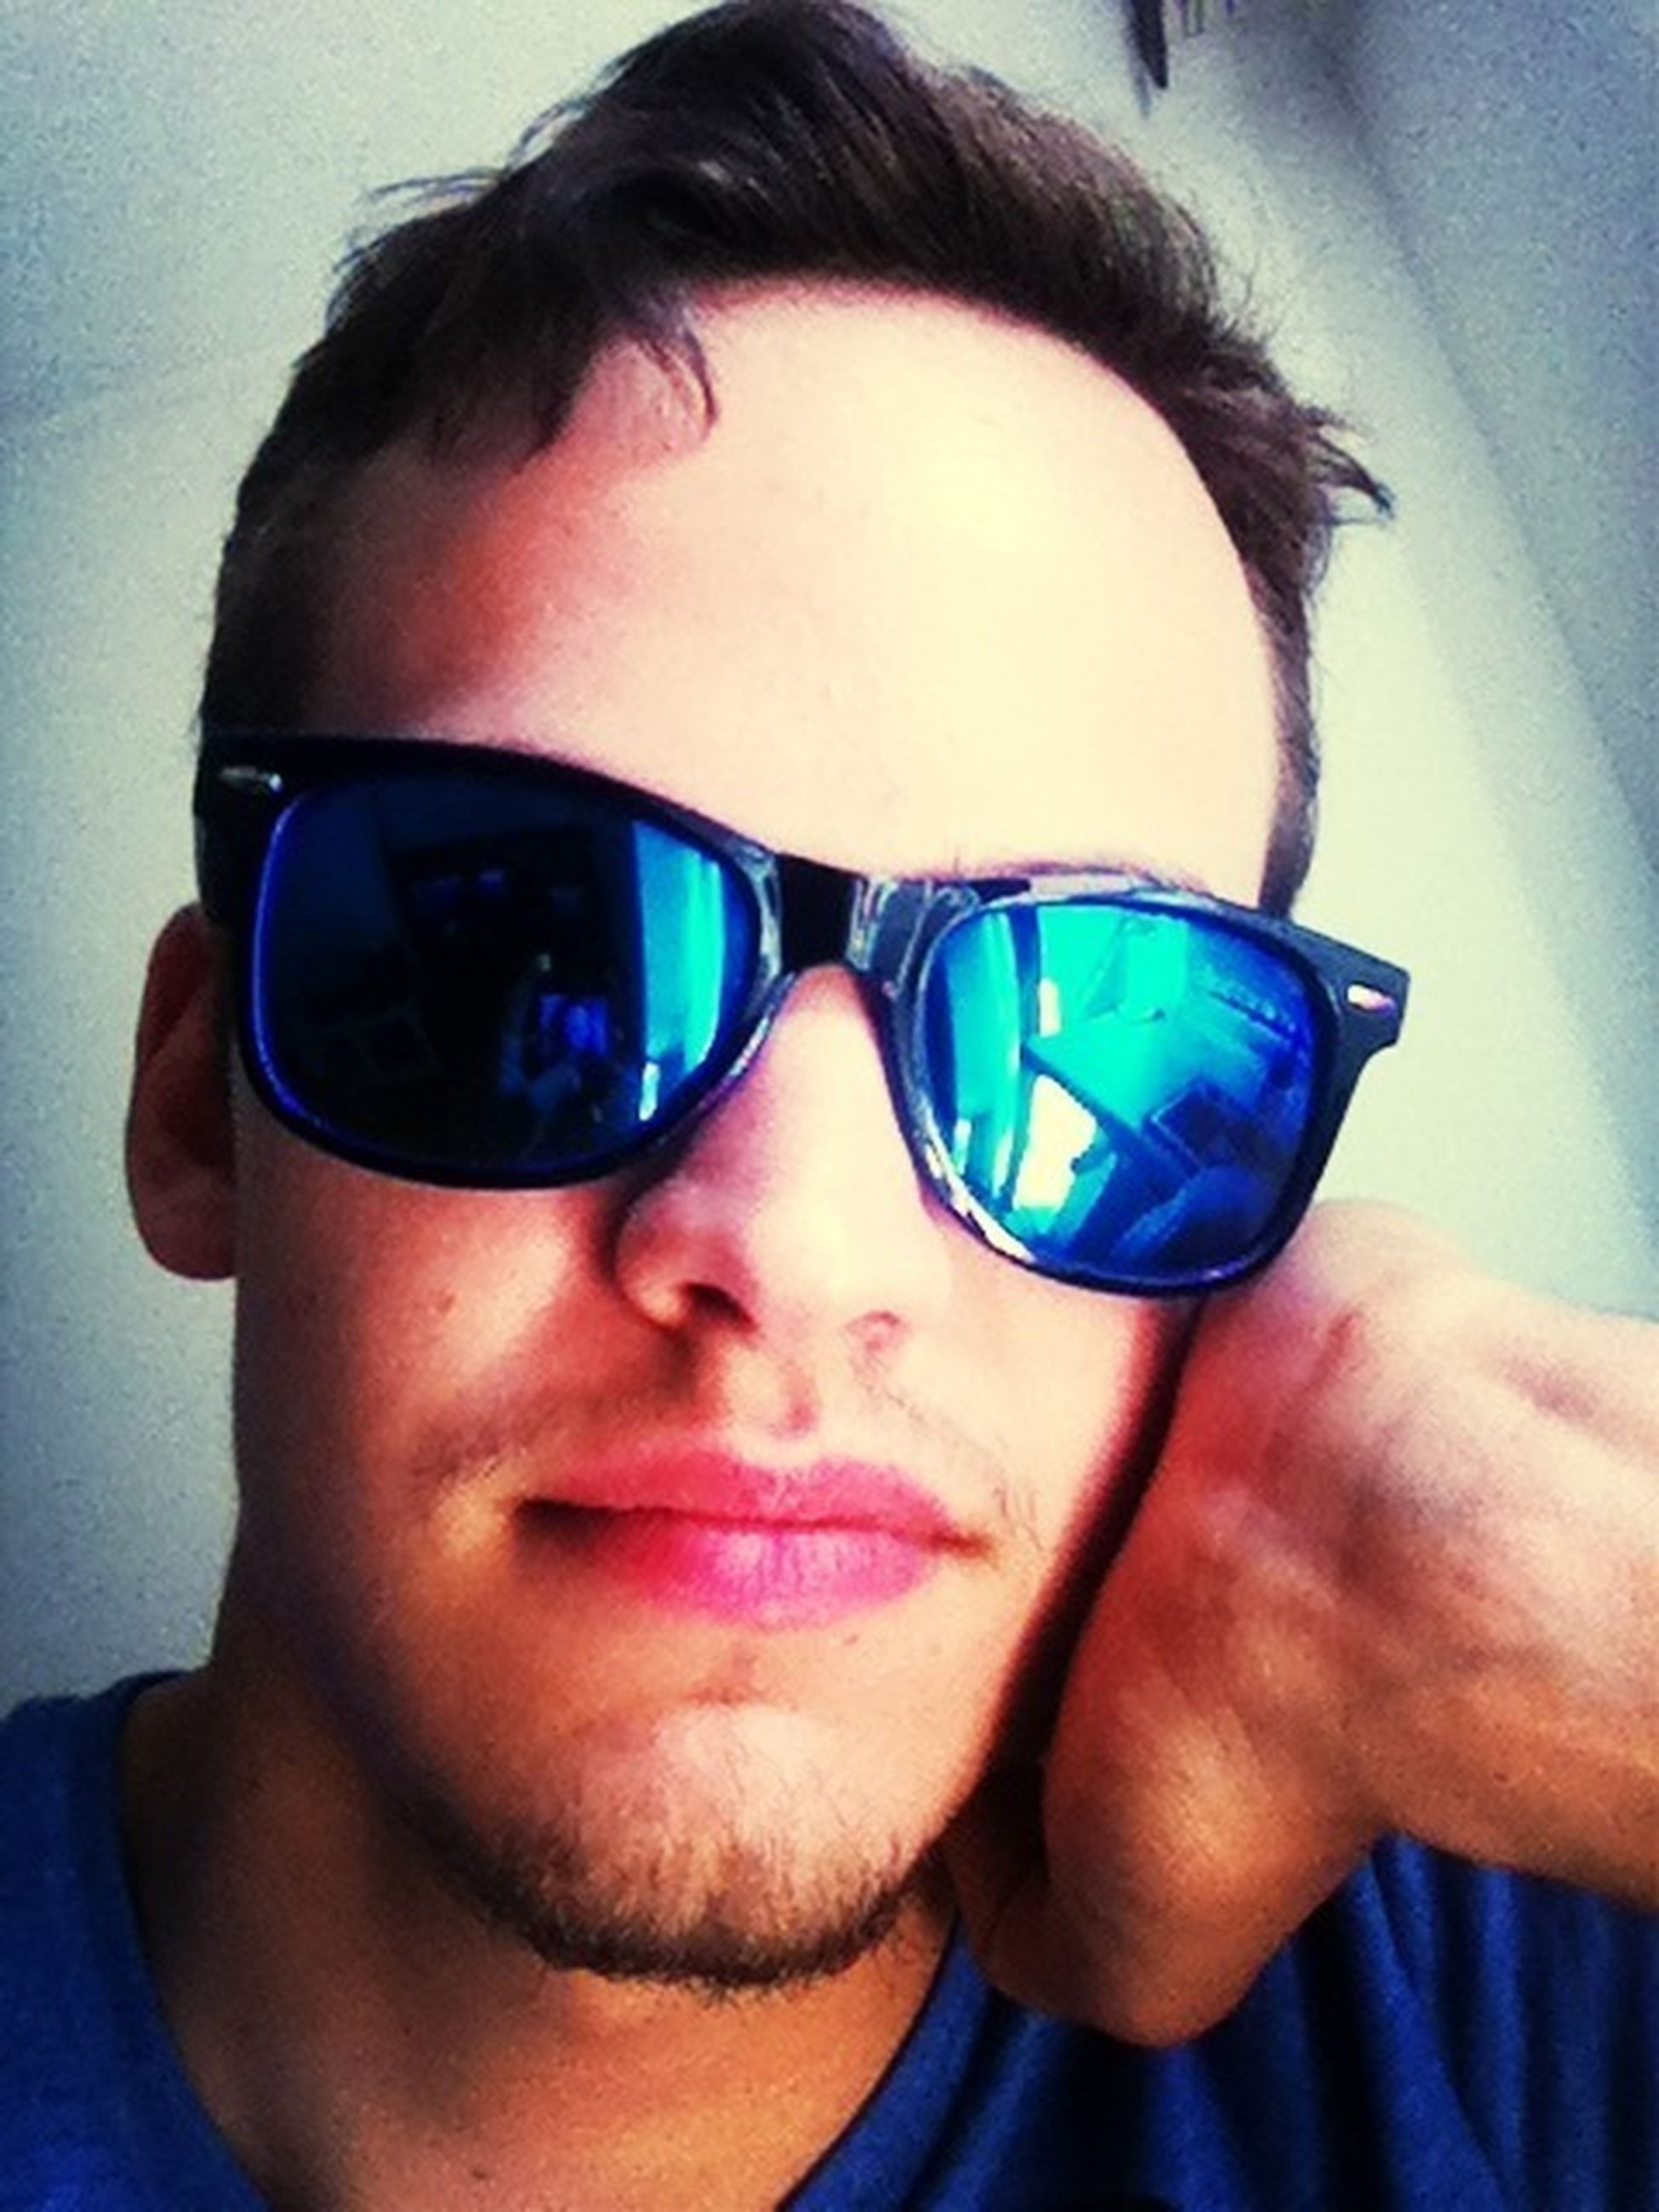 portrait, looking at camera, sunglasses, person, lifestyles, headshot, leisure activity, front view, young adult, close-up, reflection, young men, head and shoulders, smiling, eyeglasses, blue, human face